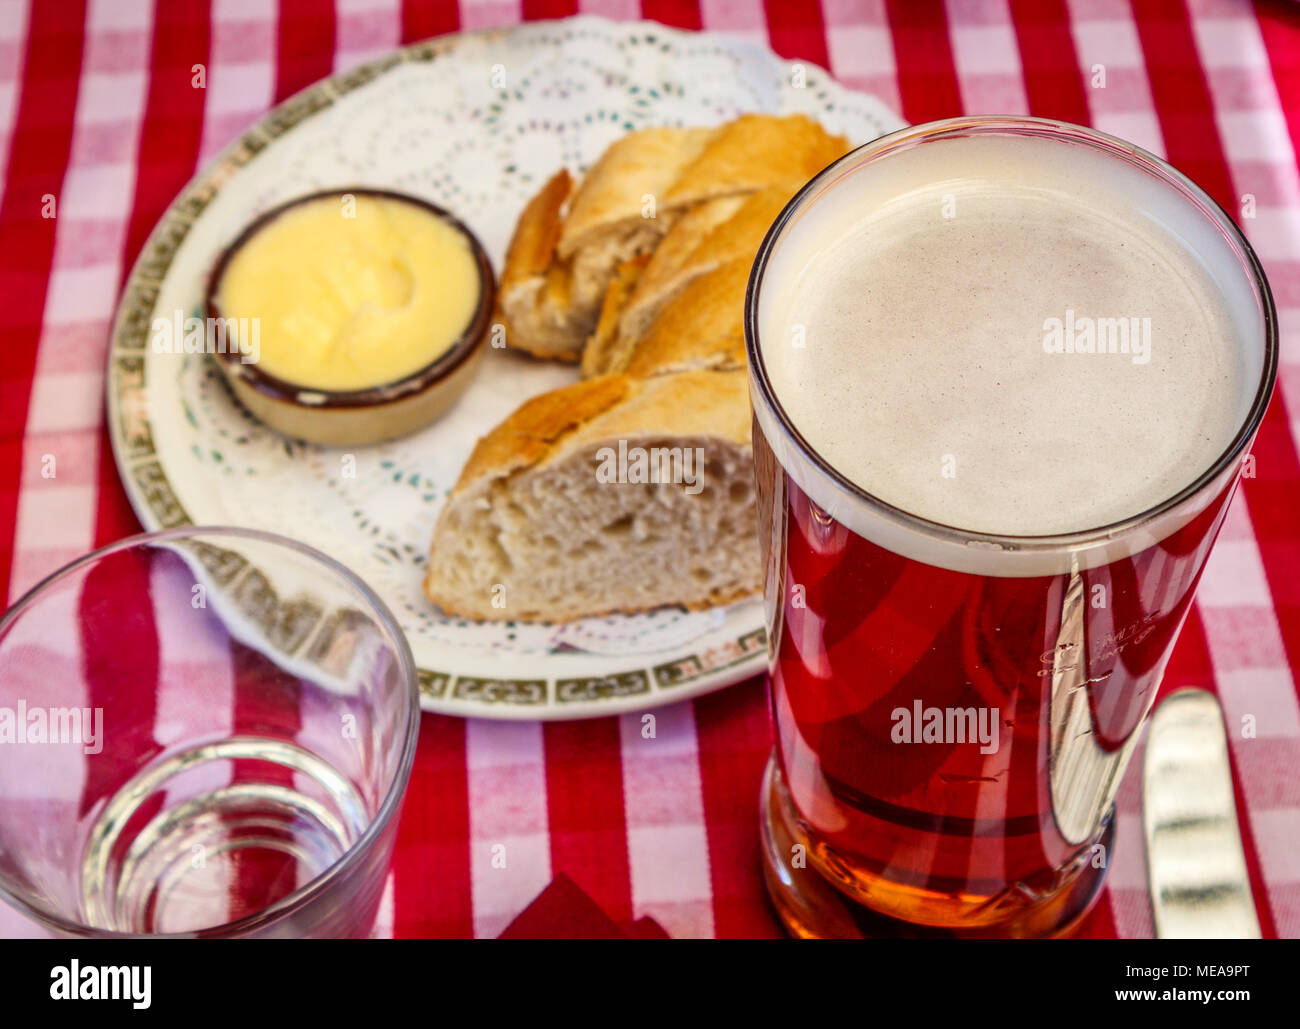 Typical British pub lunch refreshment: a pint of beer in a straight-sided glass with bread and butter on a red and white gingham checked tablecloth - Stock Image